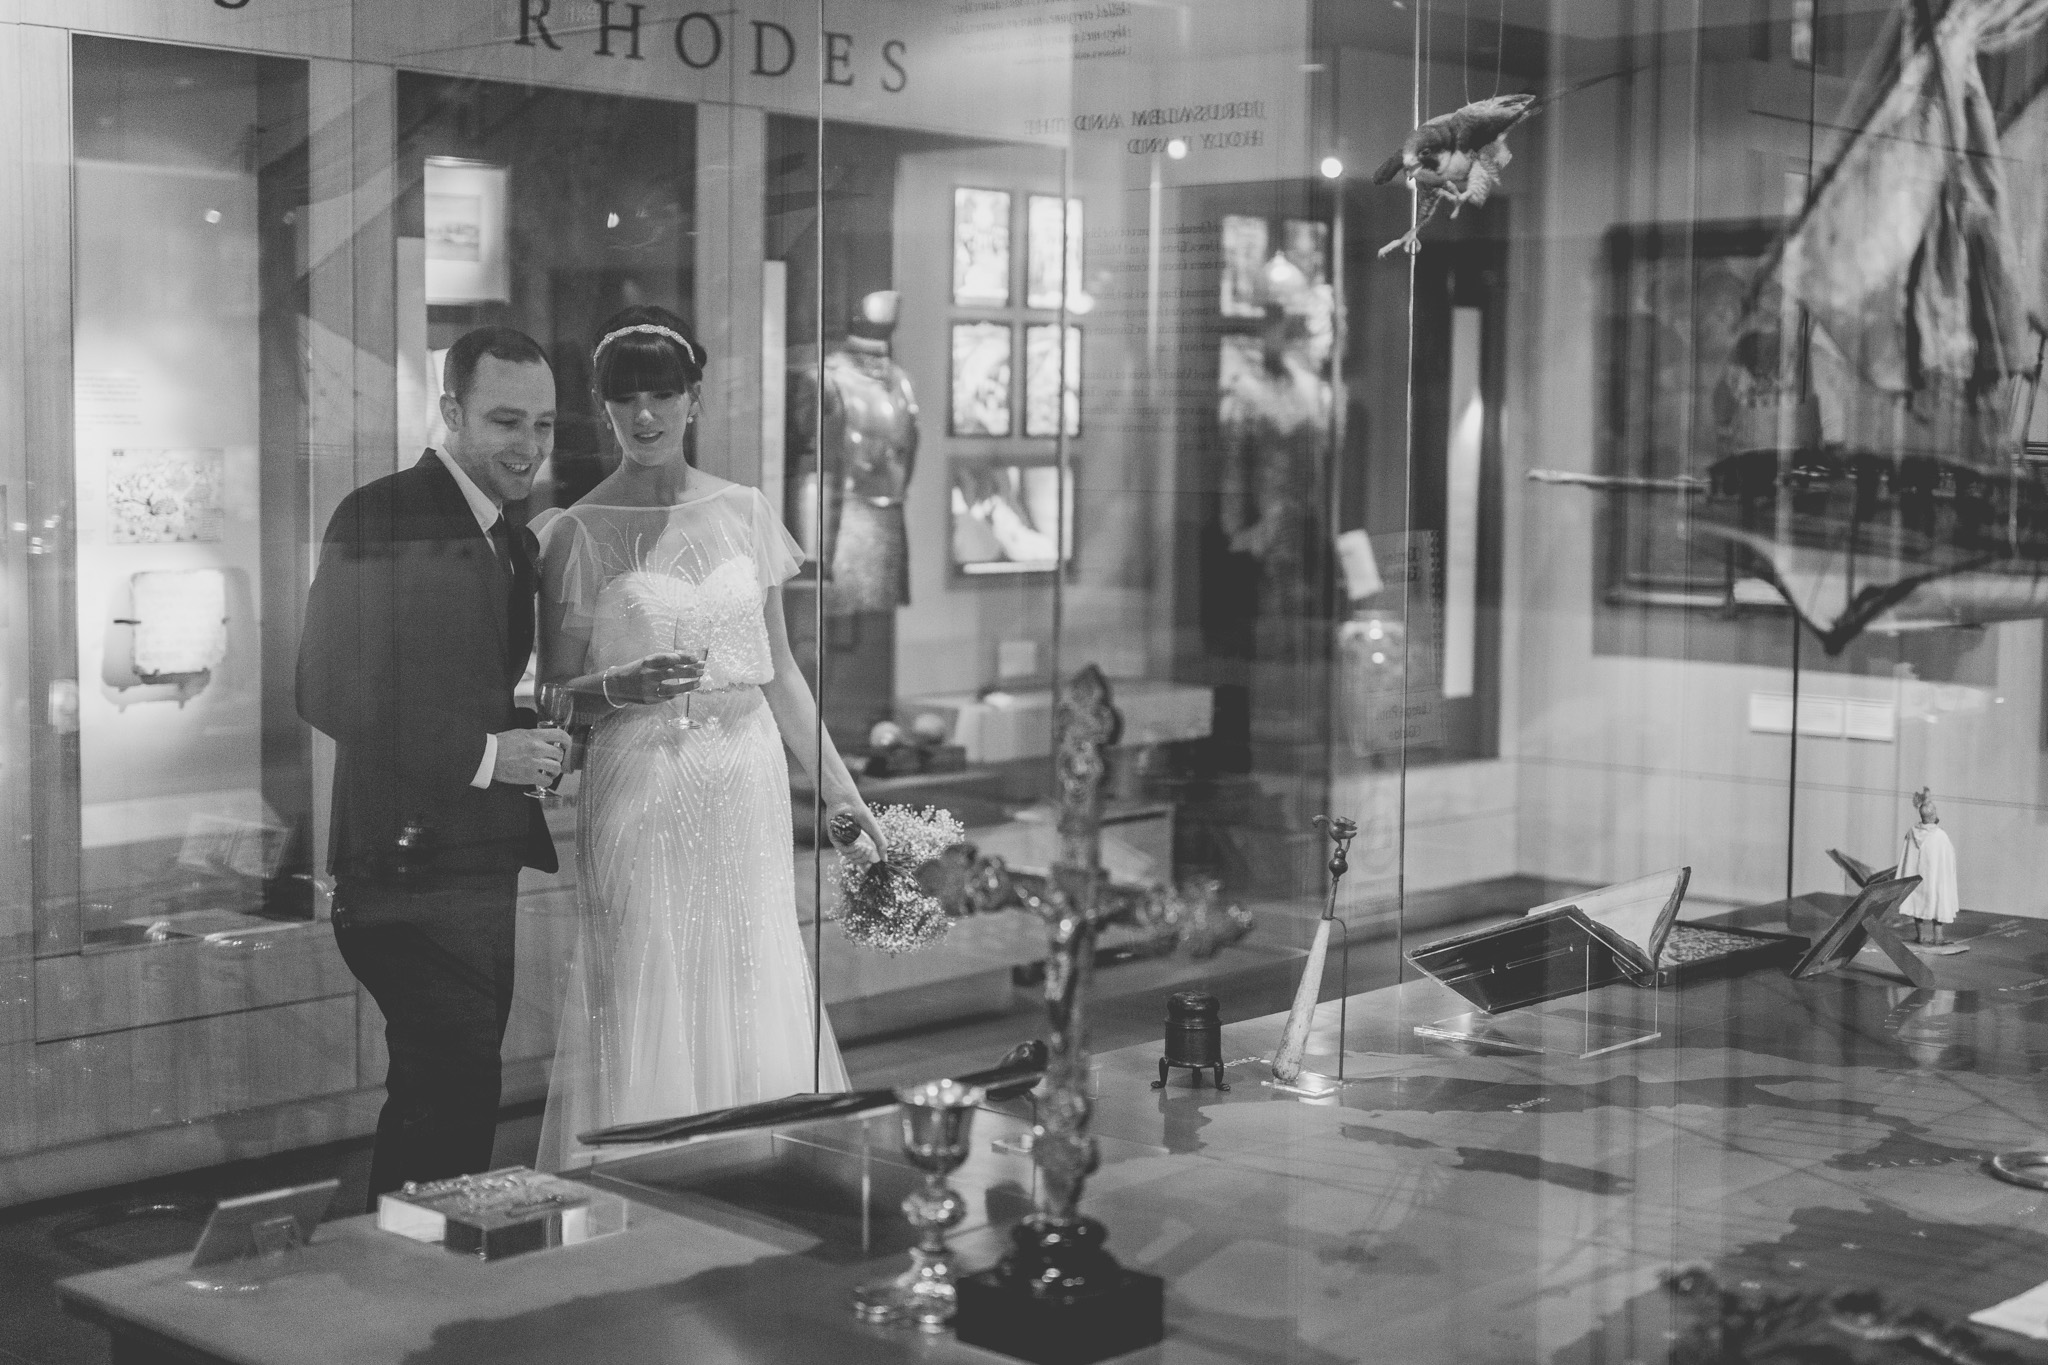 London Wedding Photography - Lisa & Jake at the Museum of the Order of St John